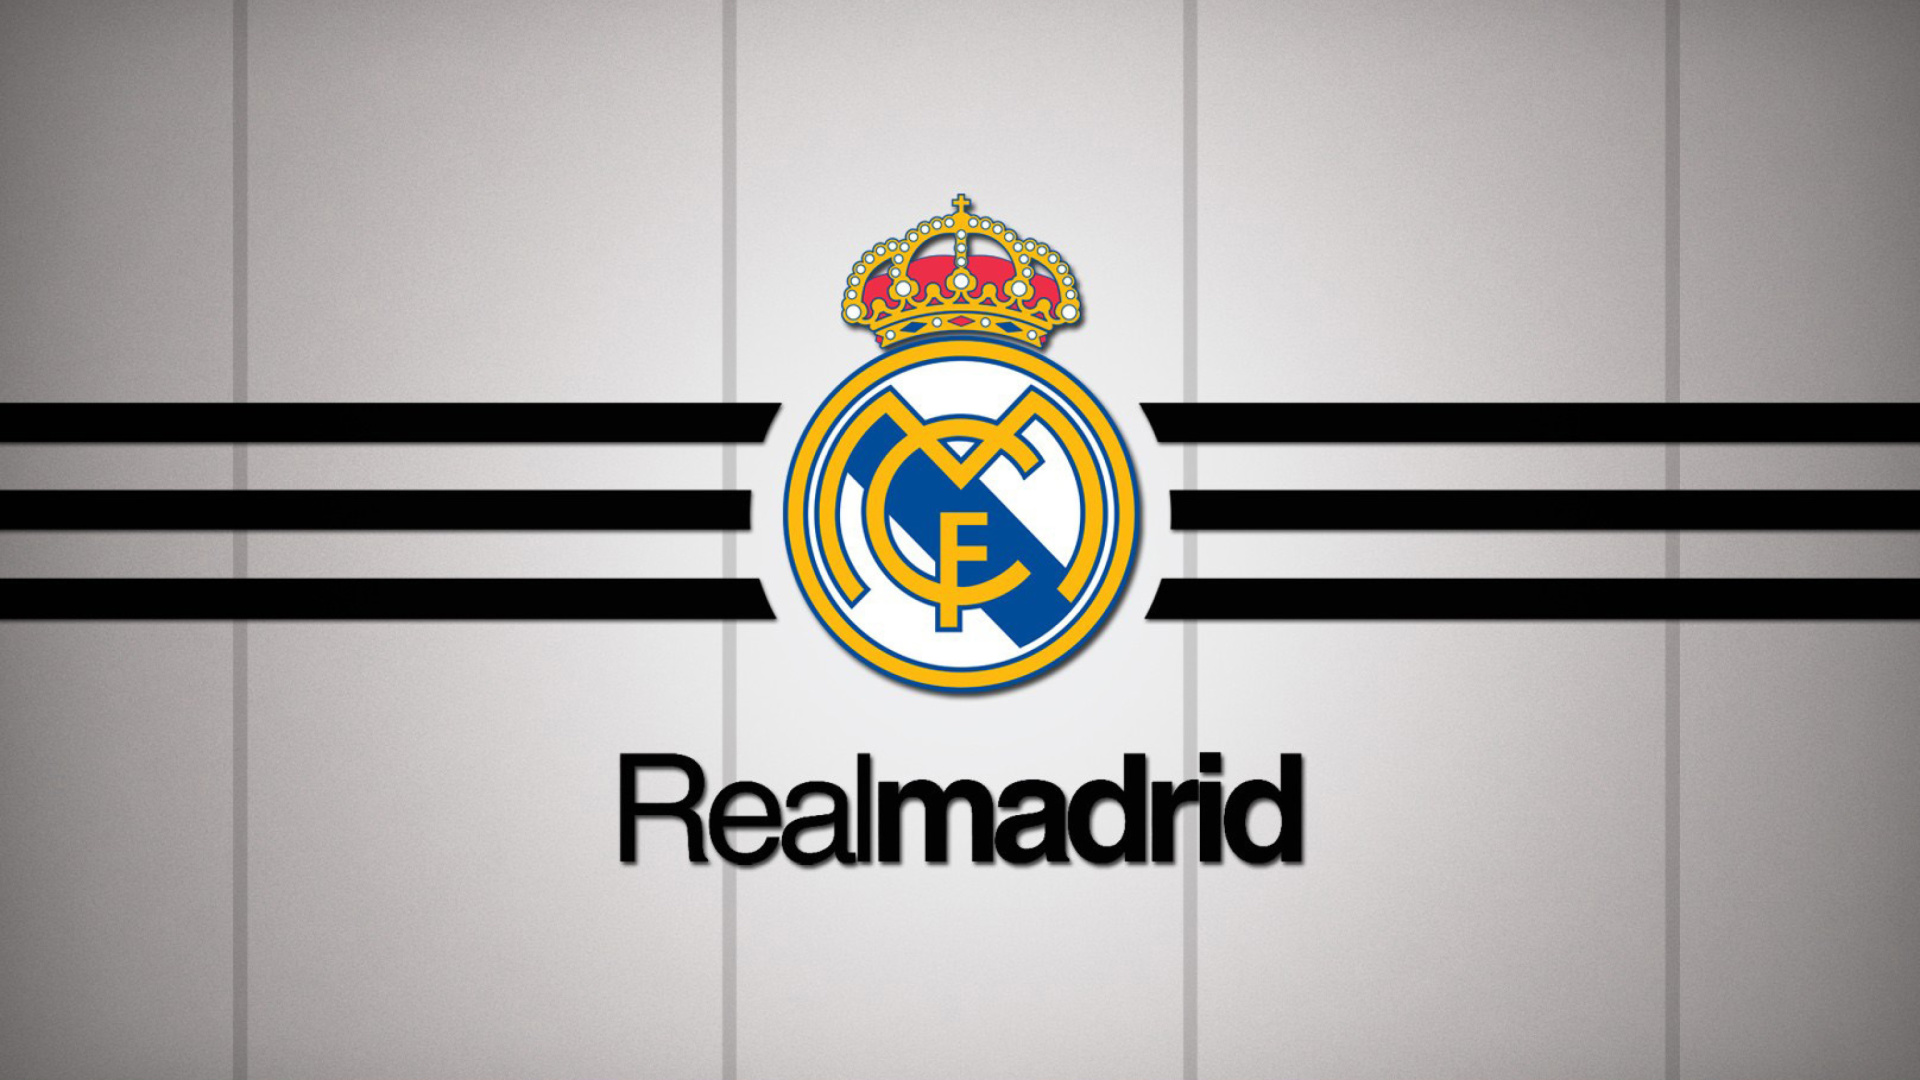 Fondos de pantalla del Real Madrid, Wallpapers gratis